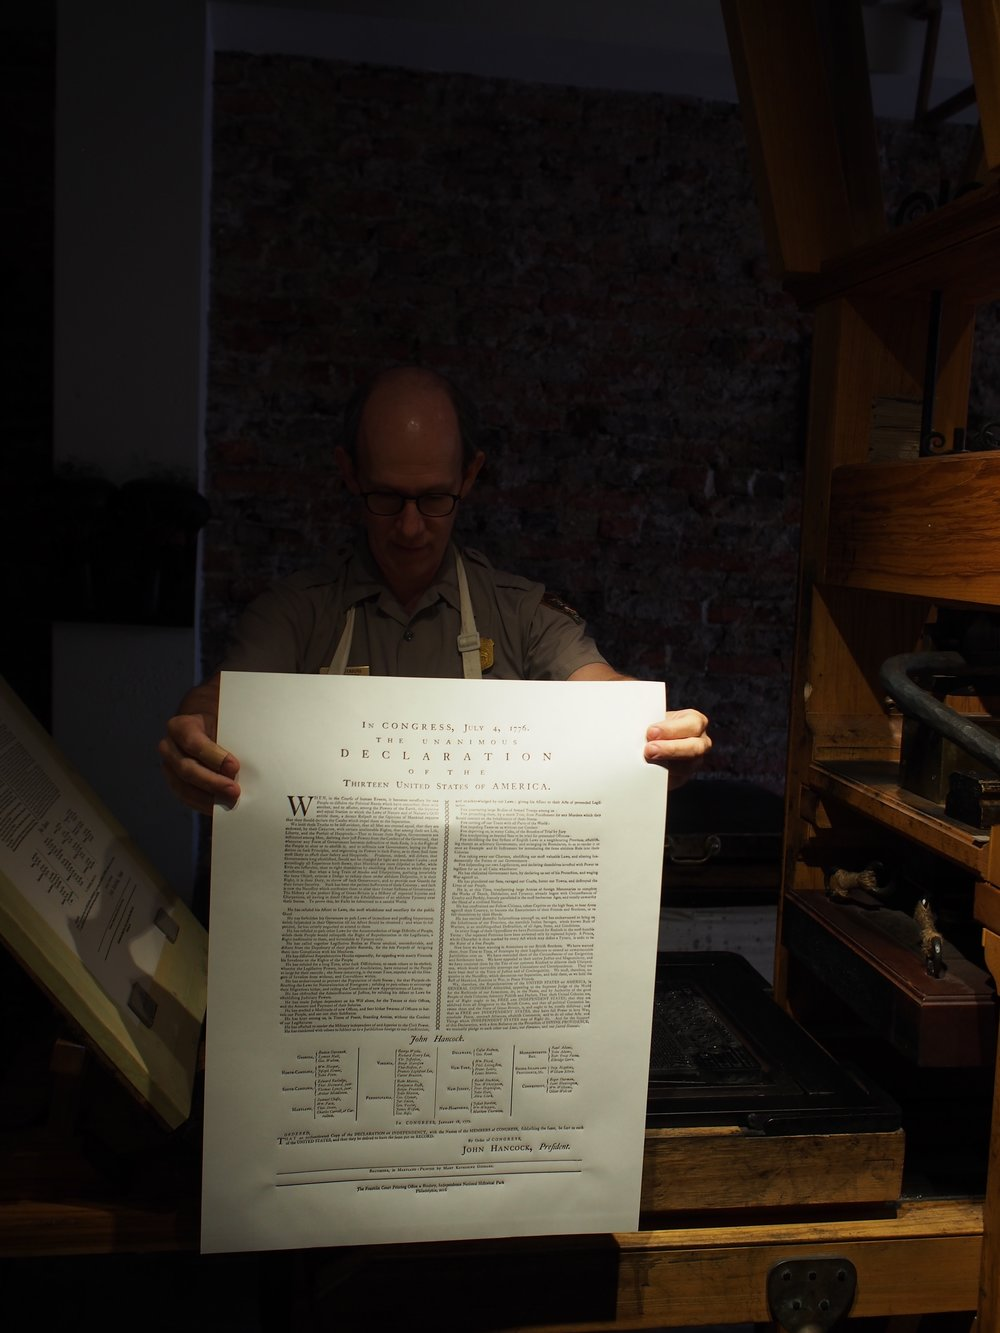 Closer look at the printed sheet:  it's the Declaration of Independence